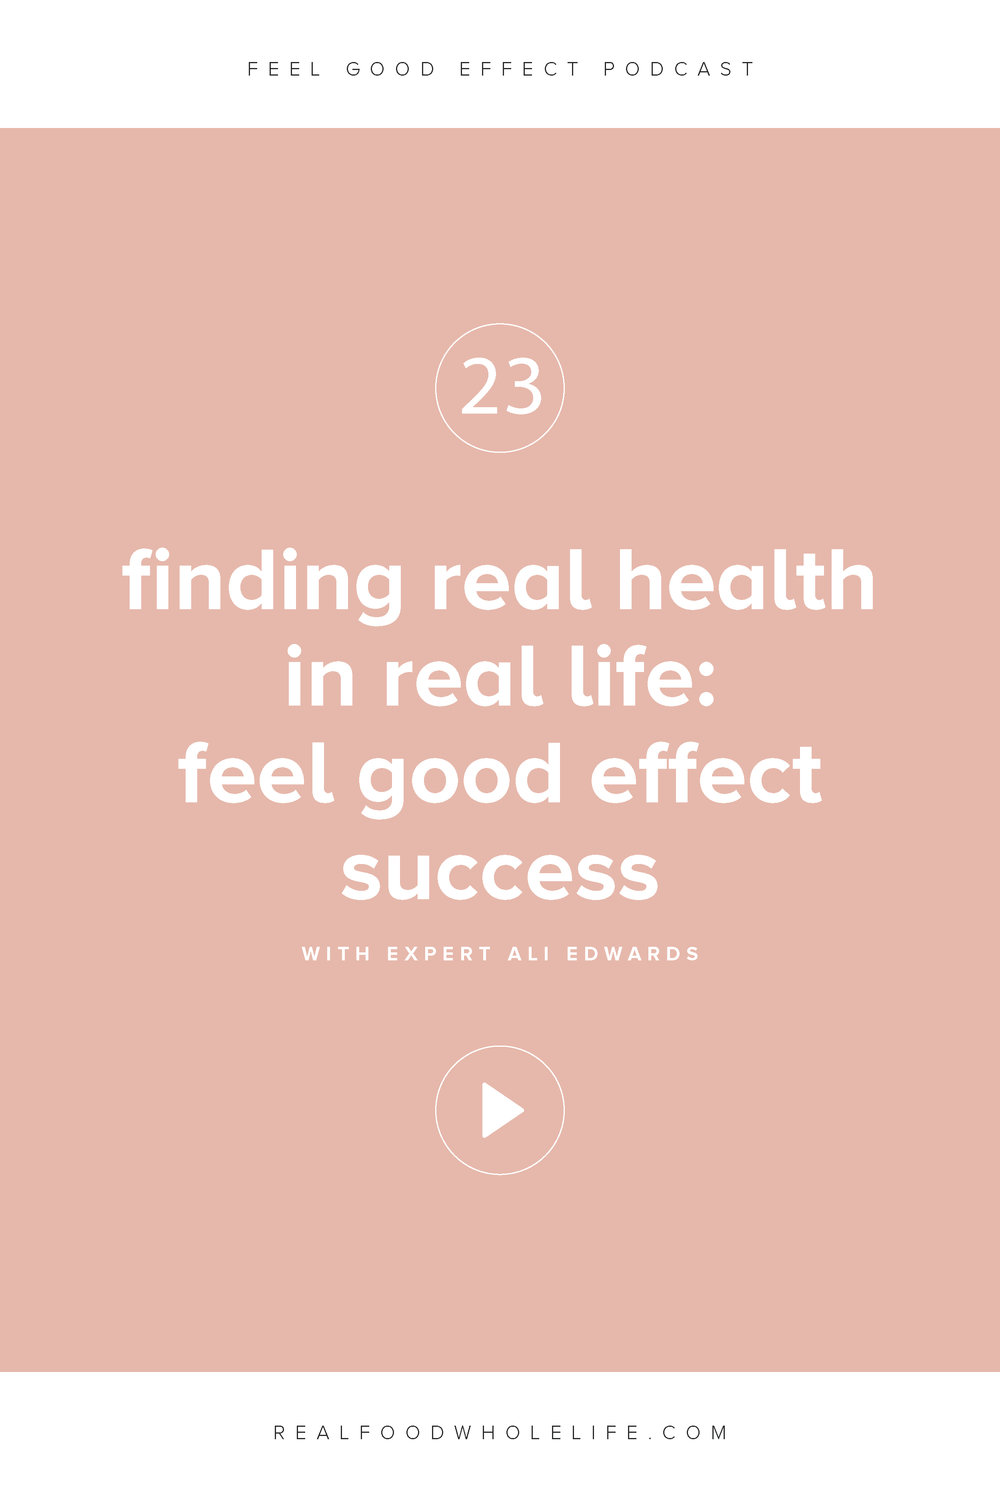 Finding Real Health in Real Life: Feel Good Effect Success with Ali Edwards